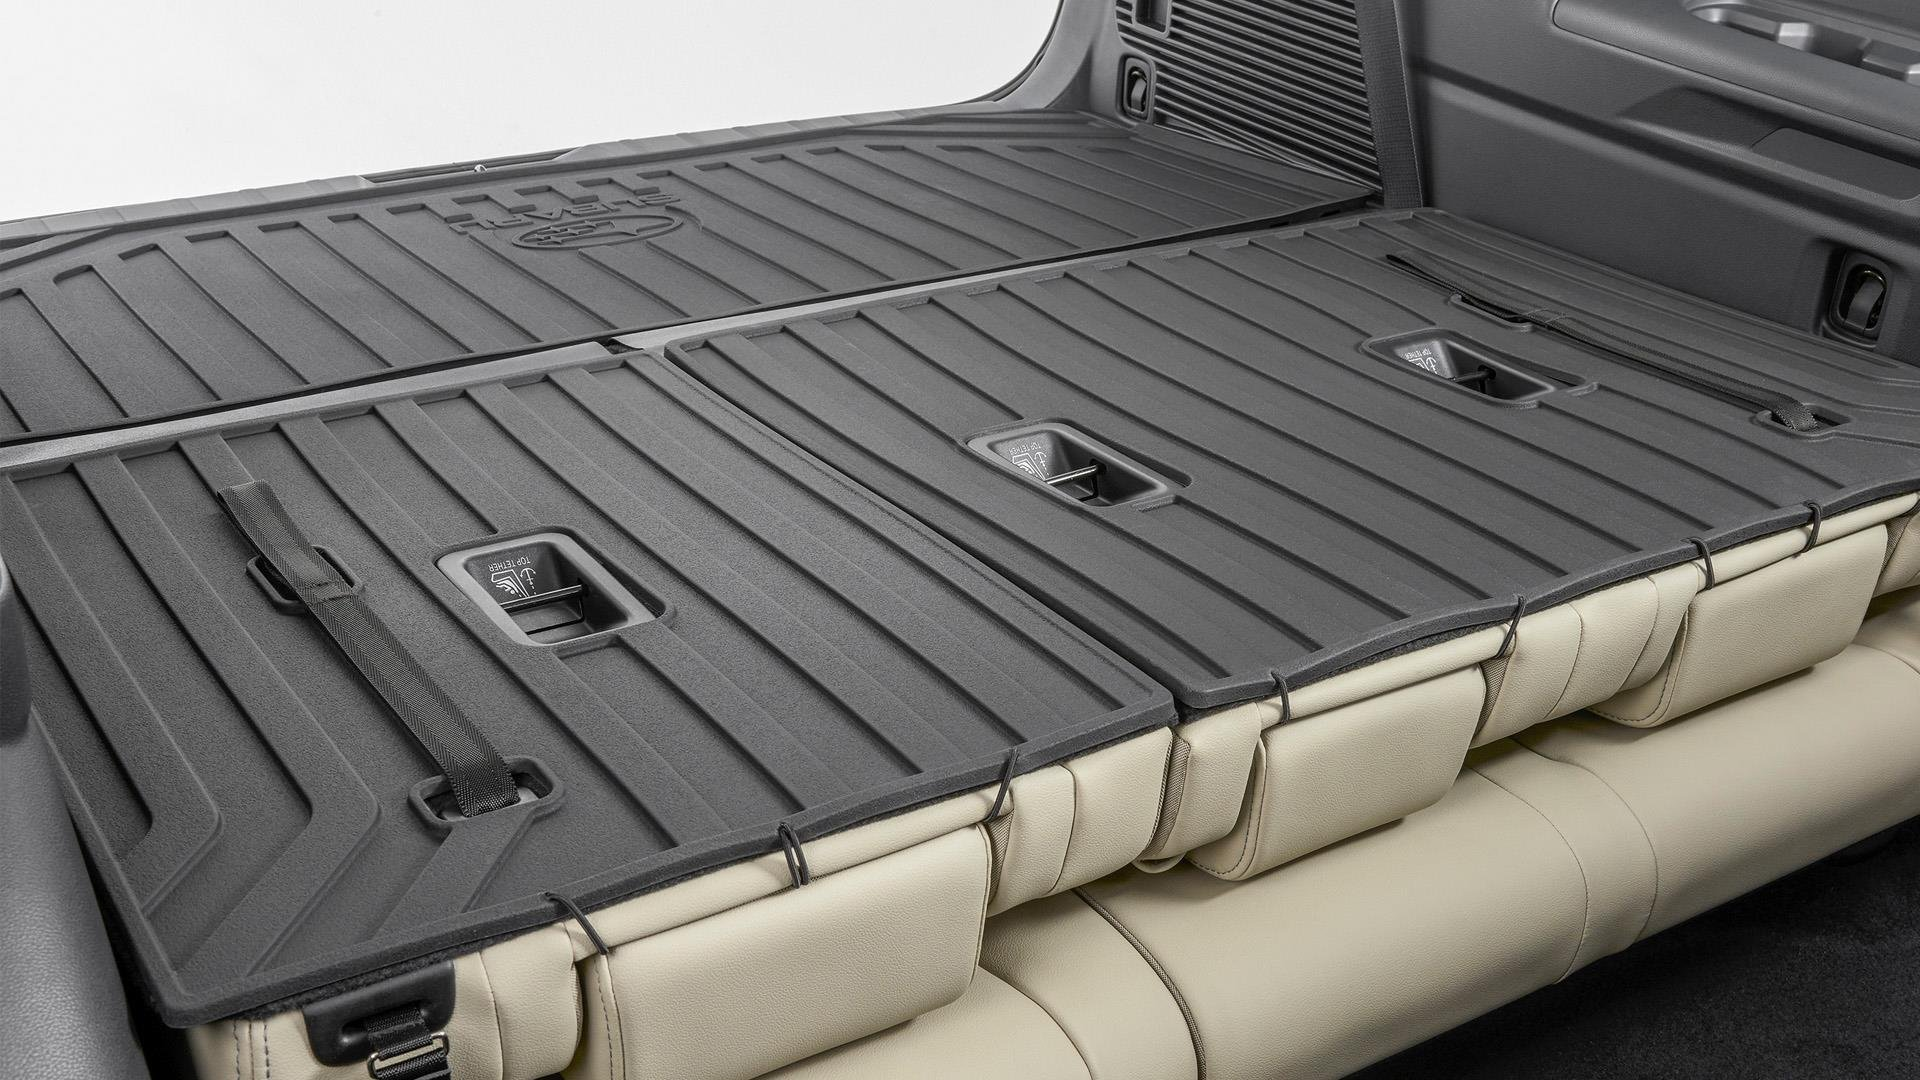 Subaru Ascent Rear Seatback Protector